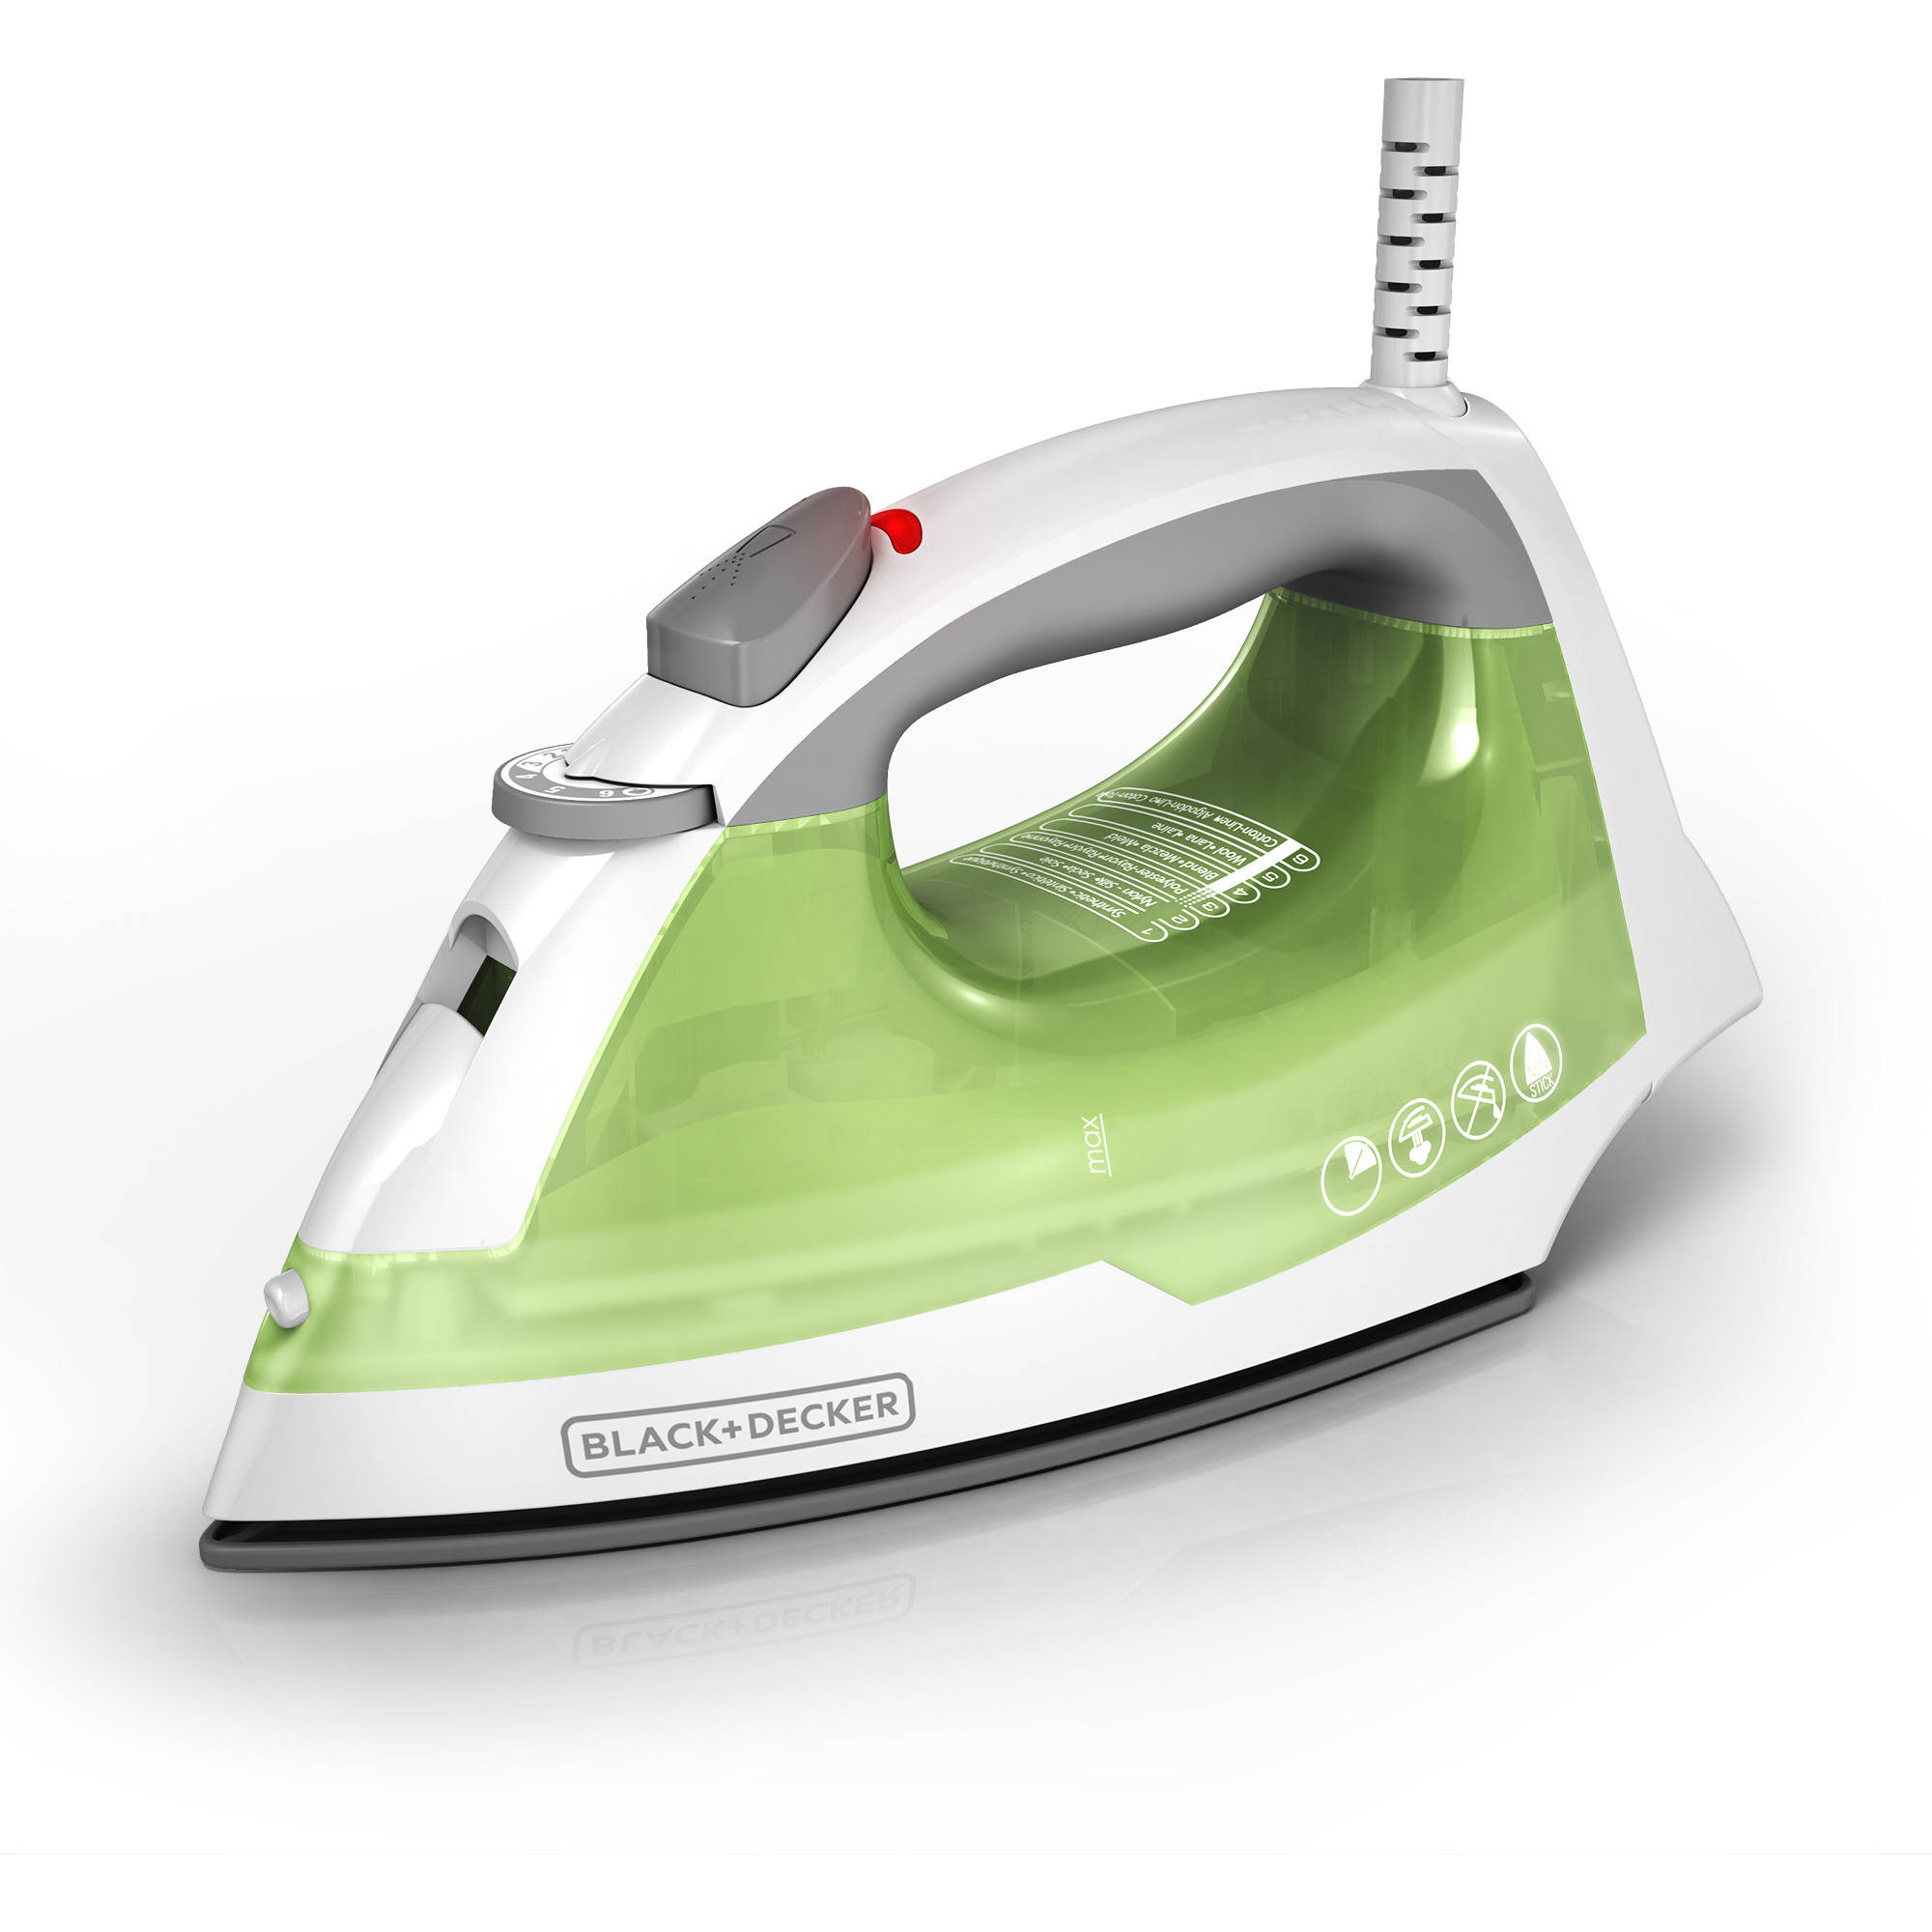 BLACK+DECKER Easy Steam Compact Clothing Iron, Green Steam Iron IR02V